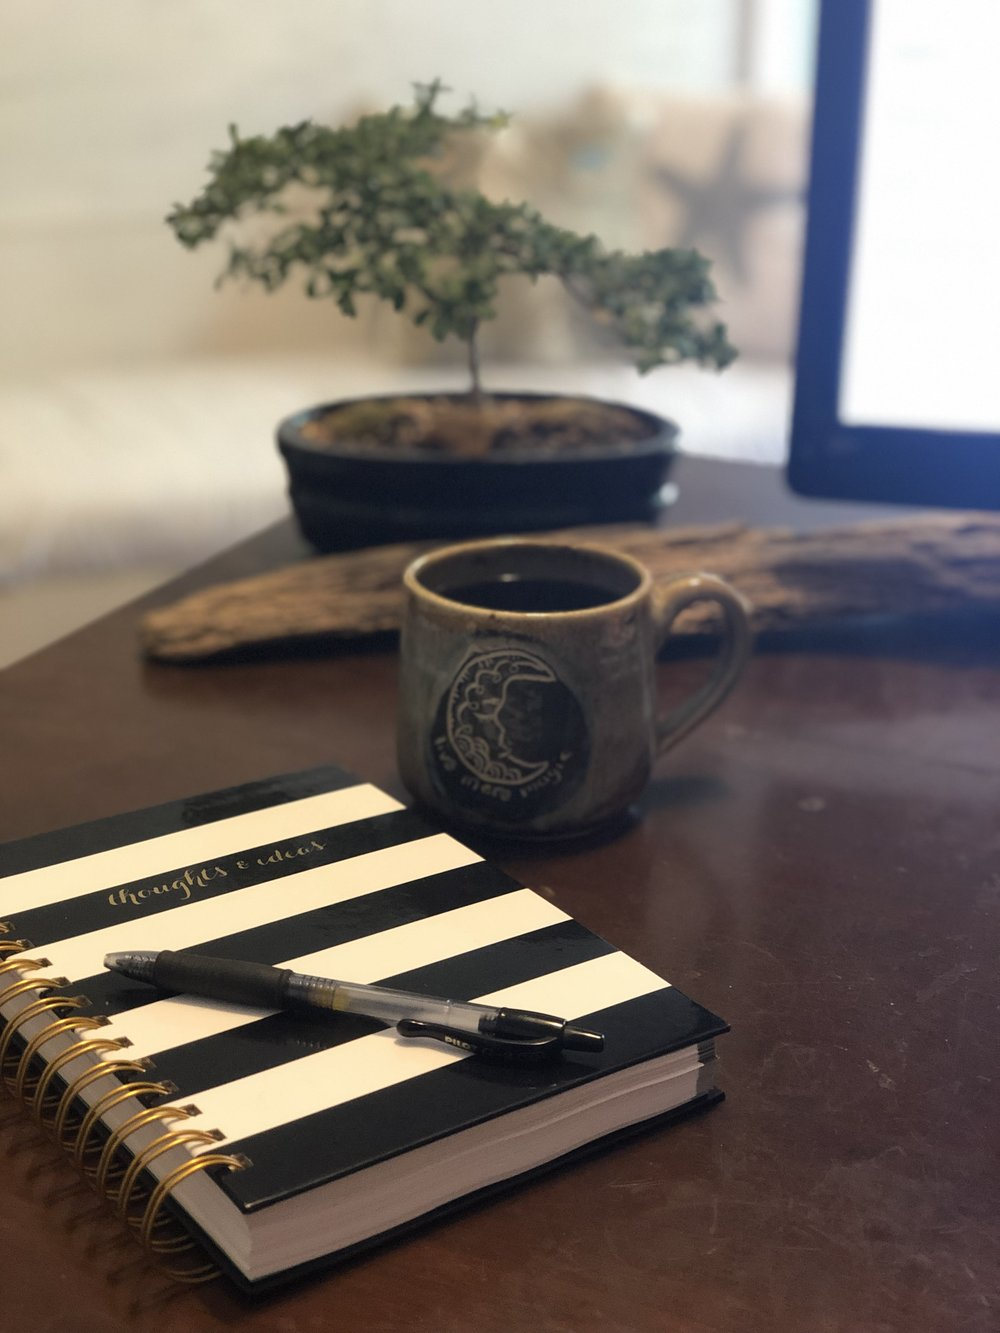 Coffee + my journal = A good morning